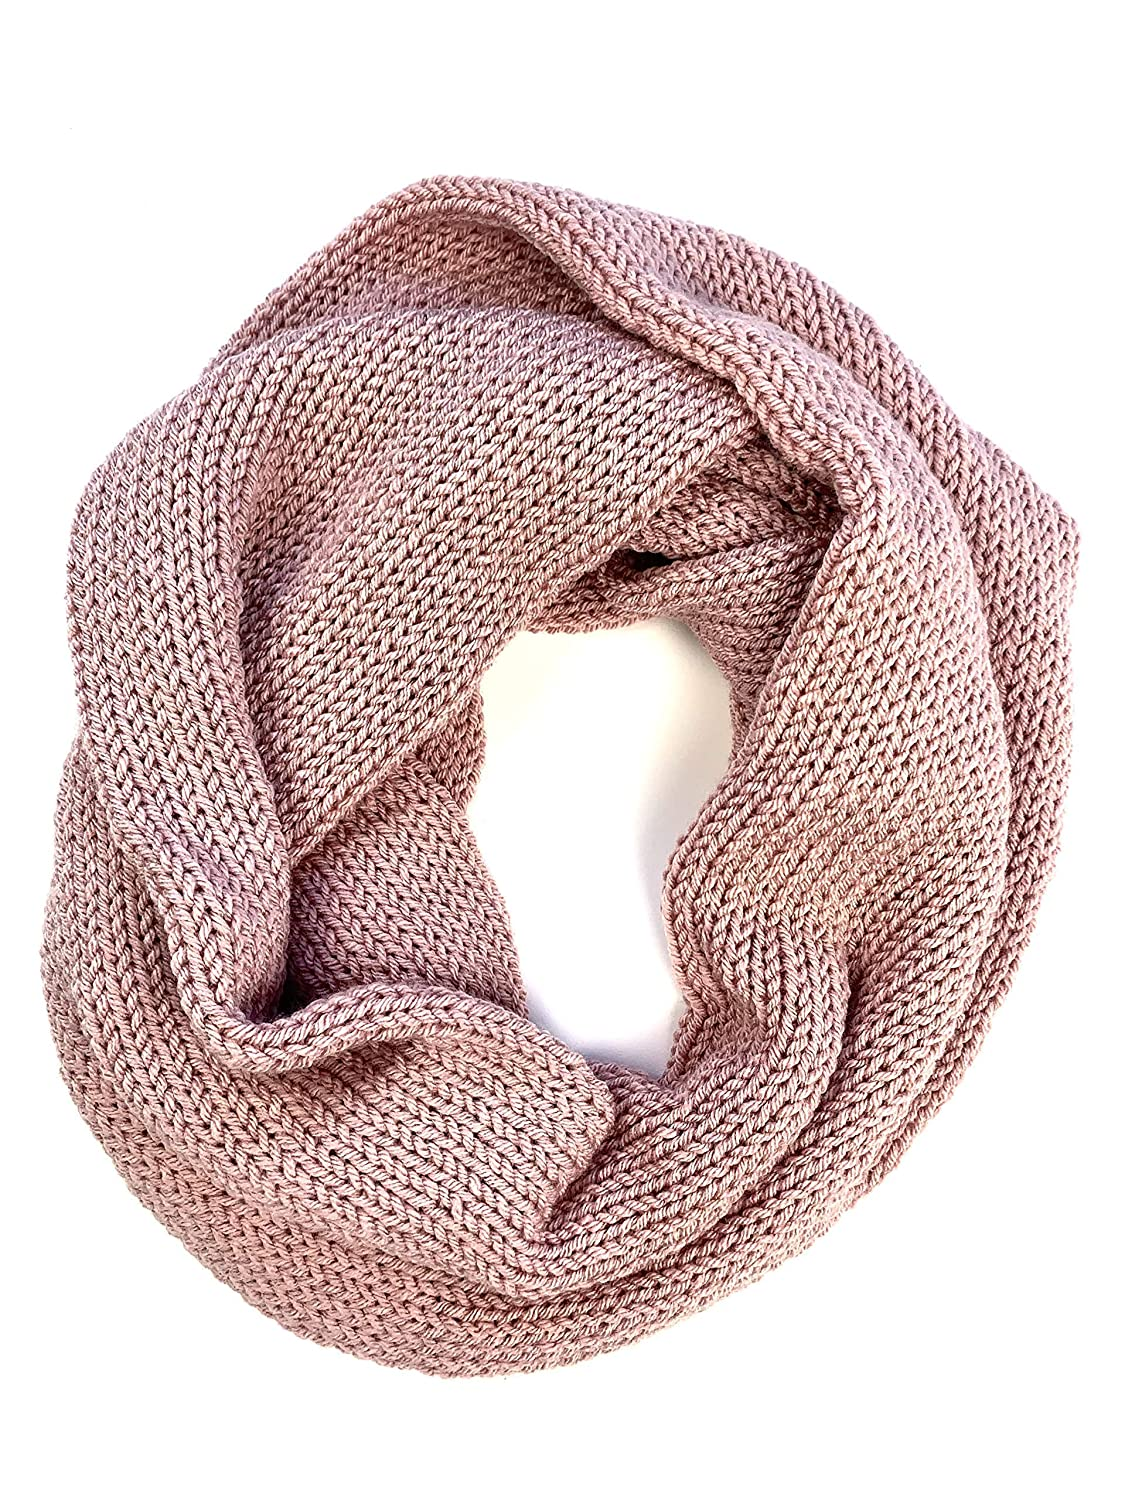 Blush Pink Dusty Rose shipfree Scarf Double Online limited product Knit Infinity